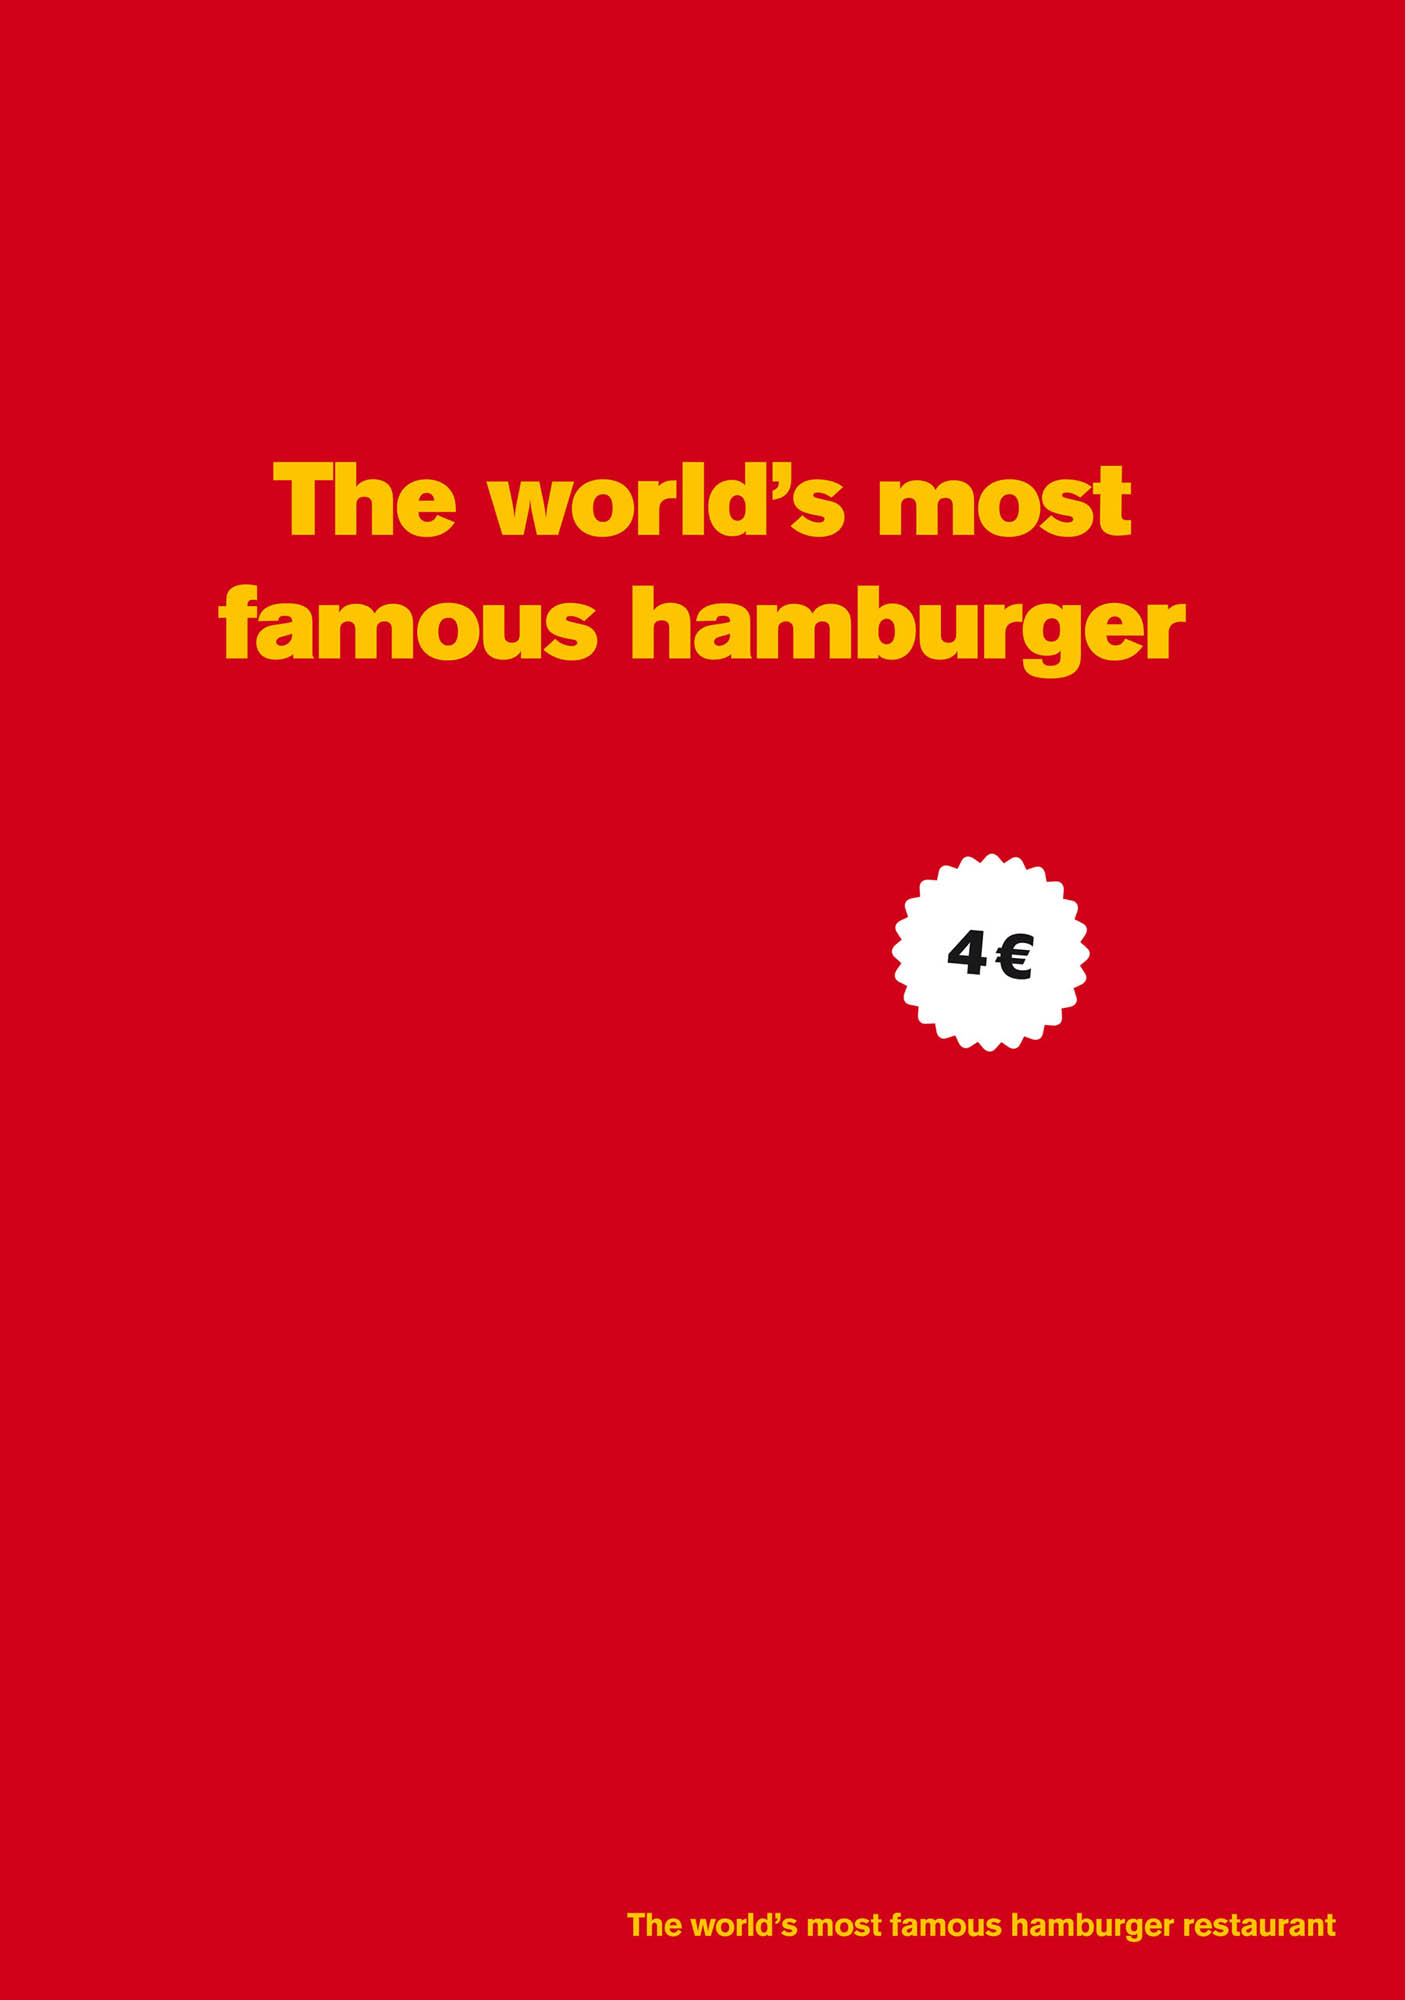 McDonald's Print Advert By DDB: The world's most famous ...